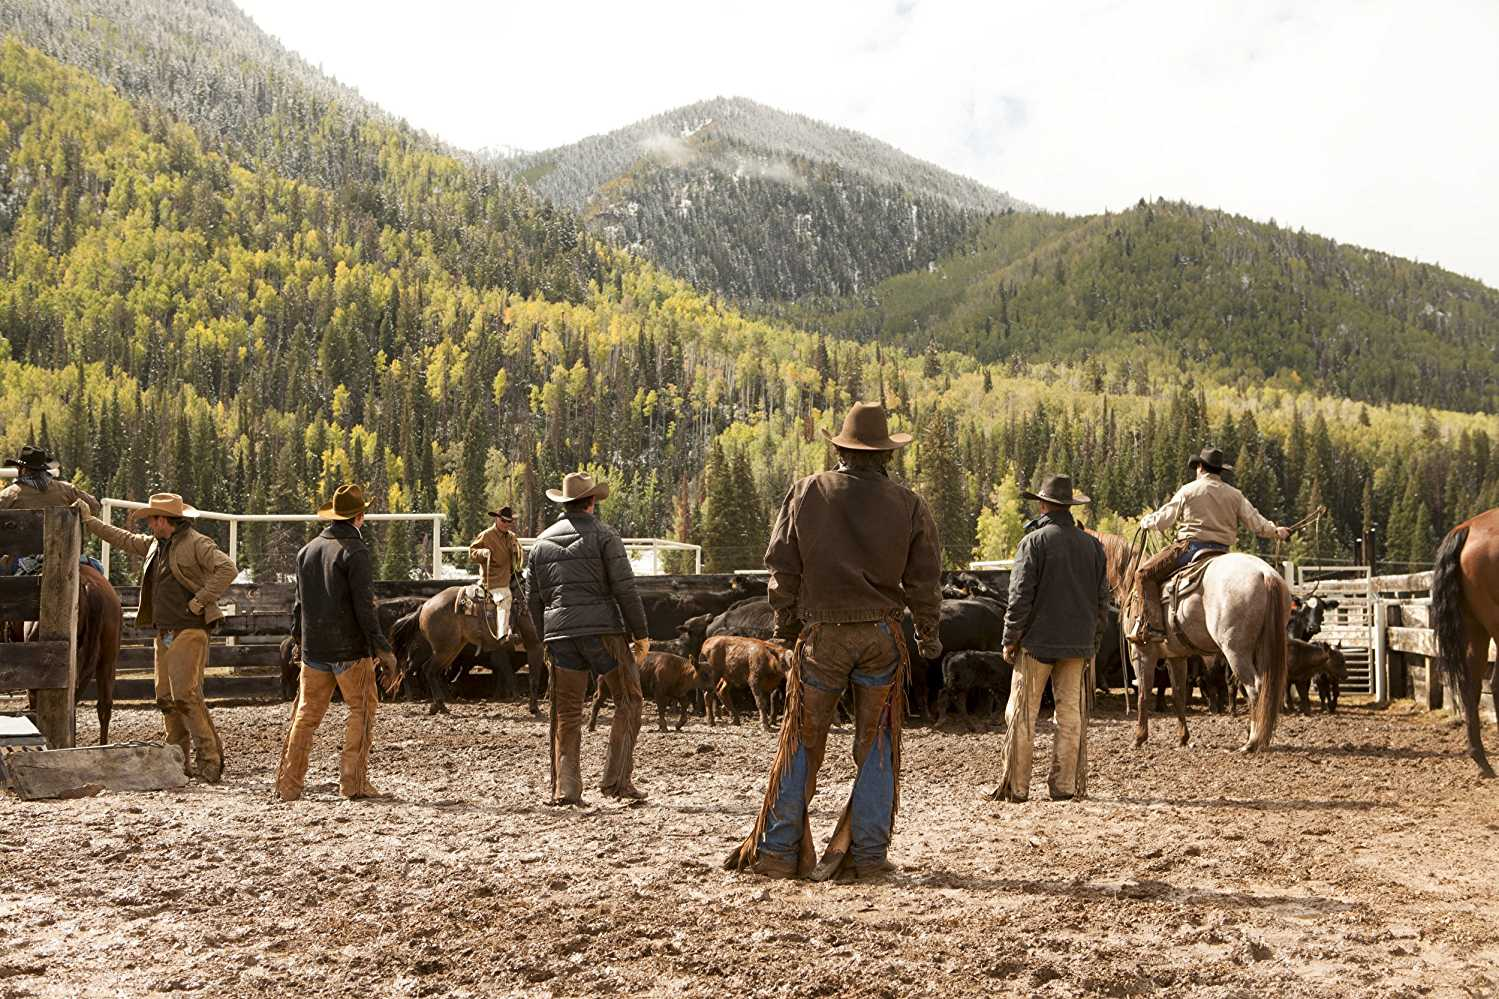 'Yellowstone' is one of the shows that will soon drop the Weinstein label (IMDb)